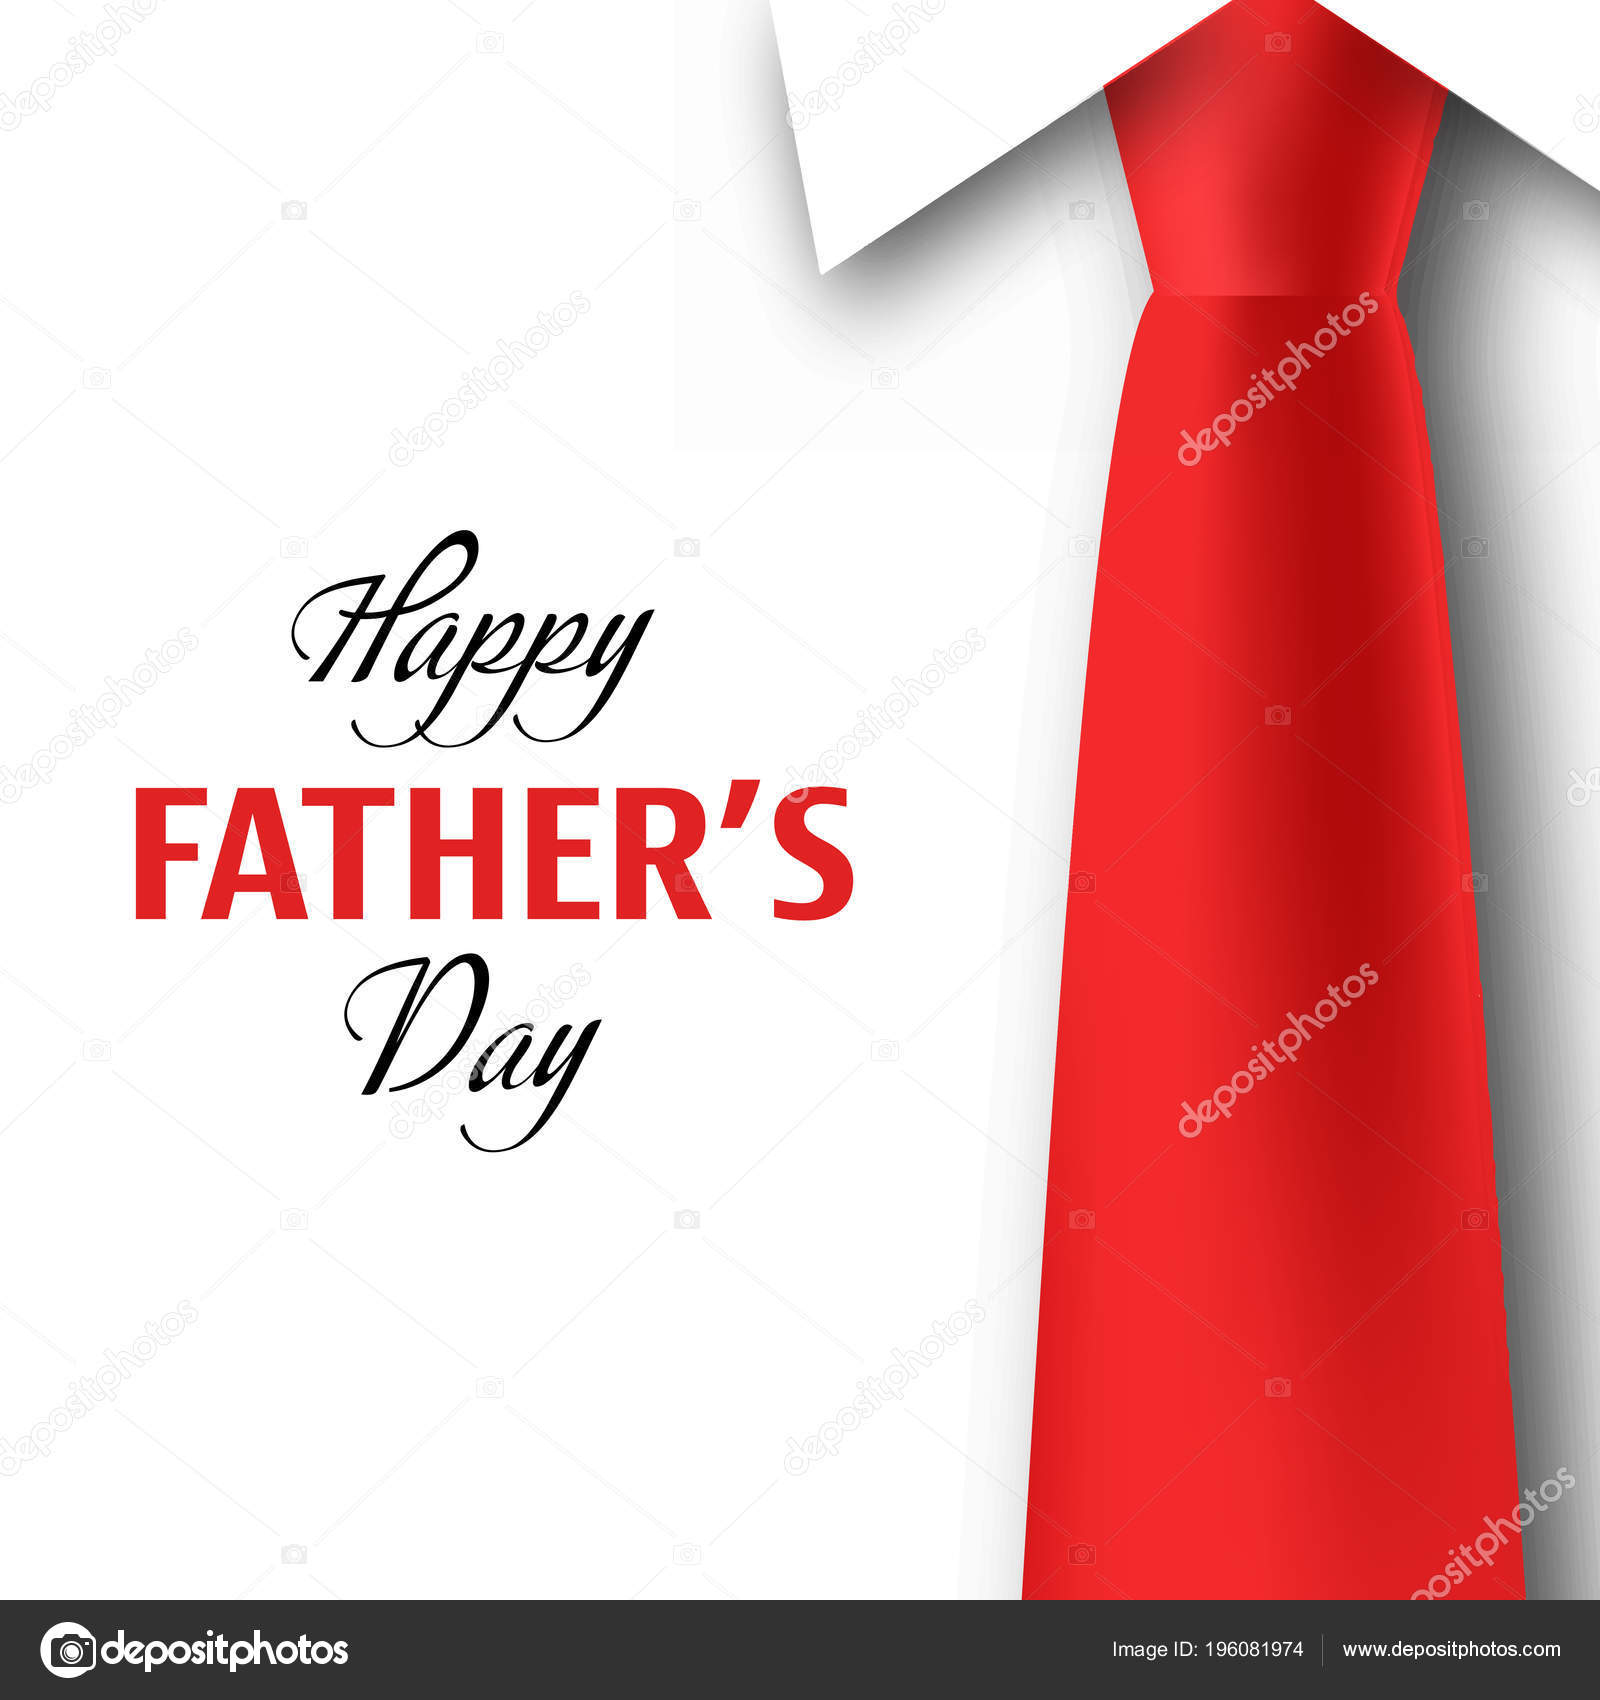 Happy fathers day greeting card vector illustration stock vector happy fathers day greeting card vector illustration stock vector m4hsunfo Image collections